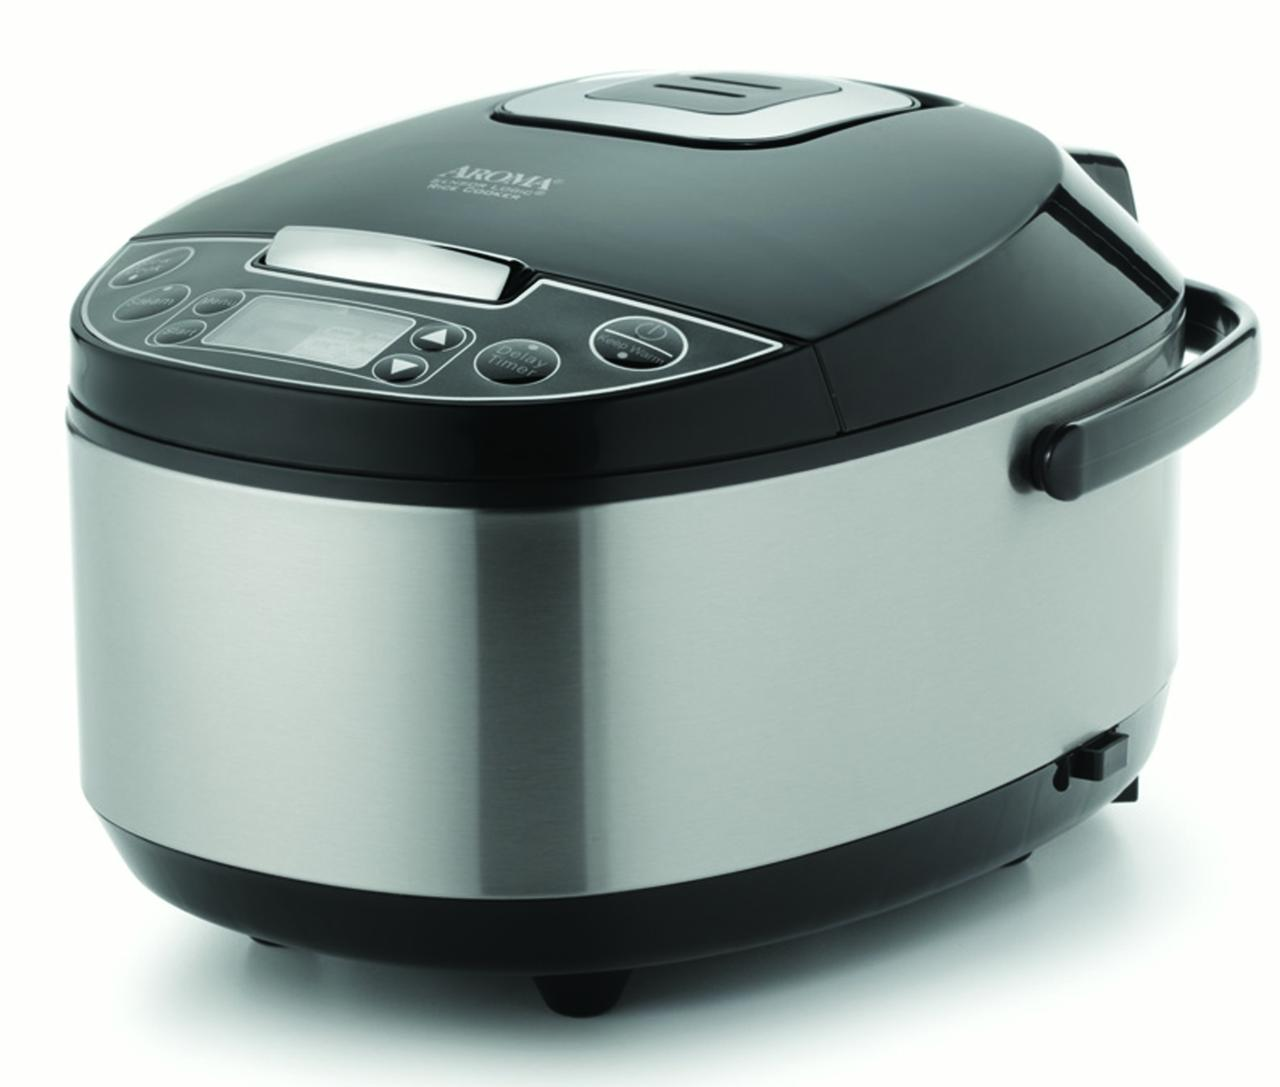 AROMA Professional 12-cup (Cooked) Digital Rice Cooker, Food Steamer and Slow Cooker (ARC-616SB) by Aroma